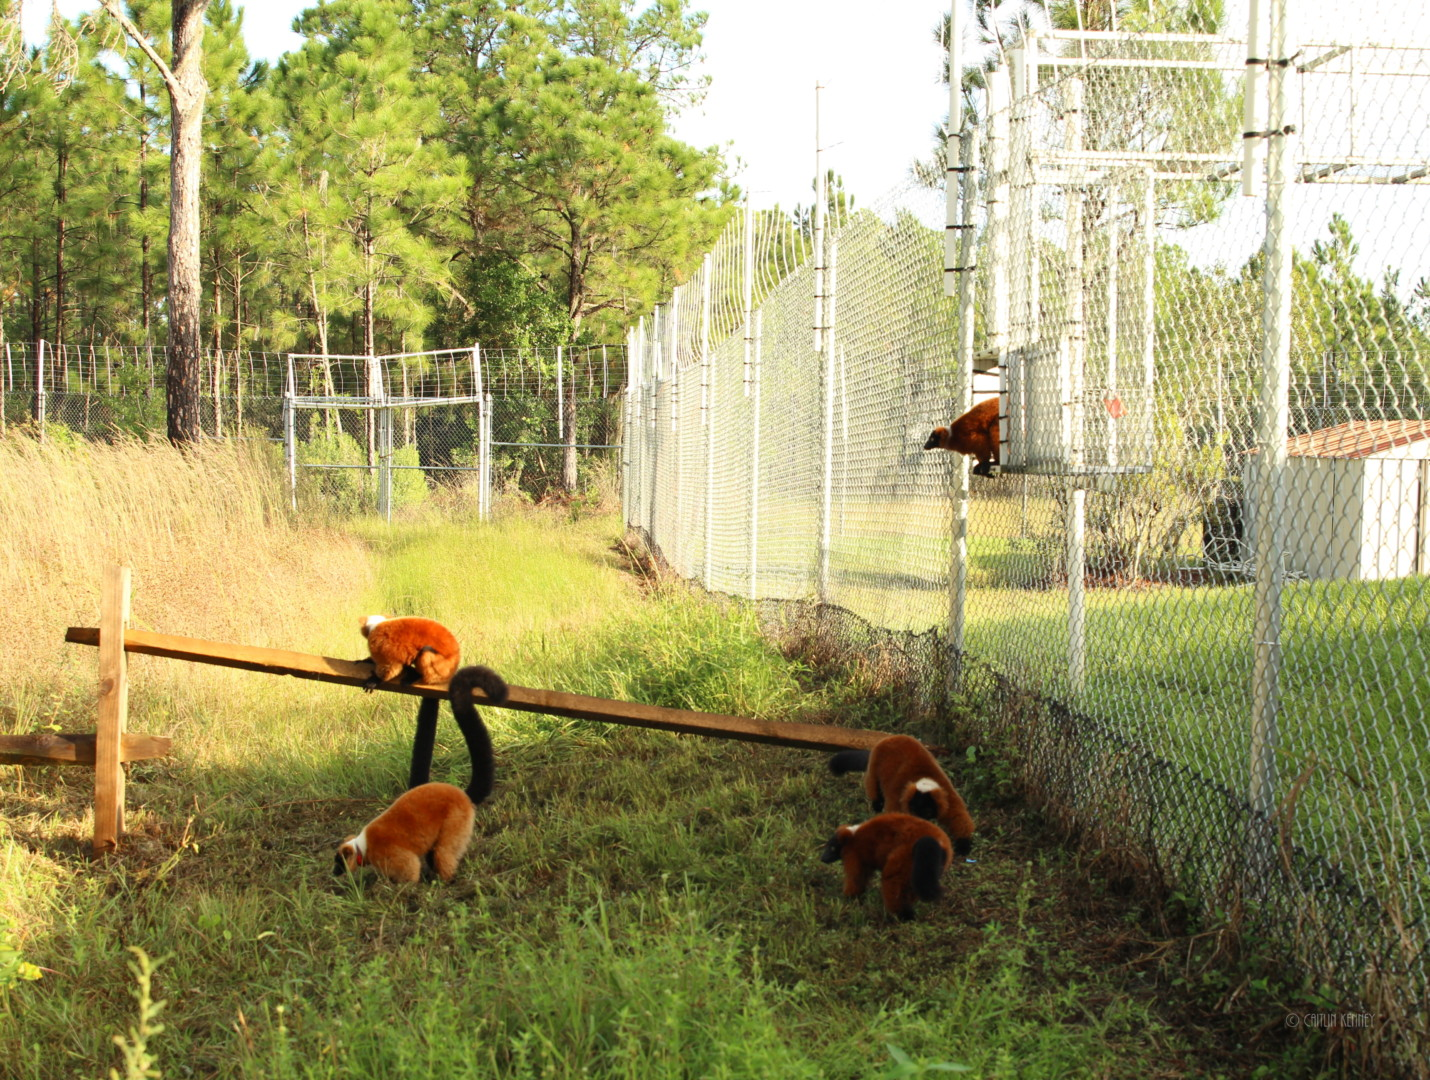 A group of red ruffed lemurs leaving their shelter and entering their forest home